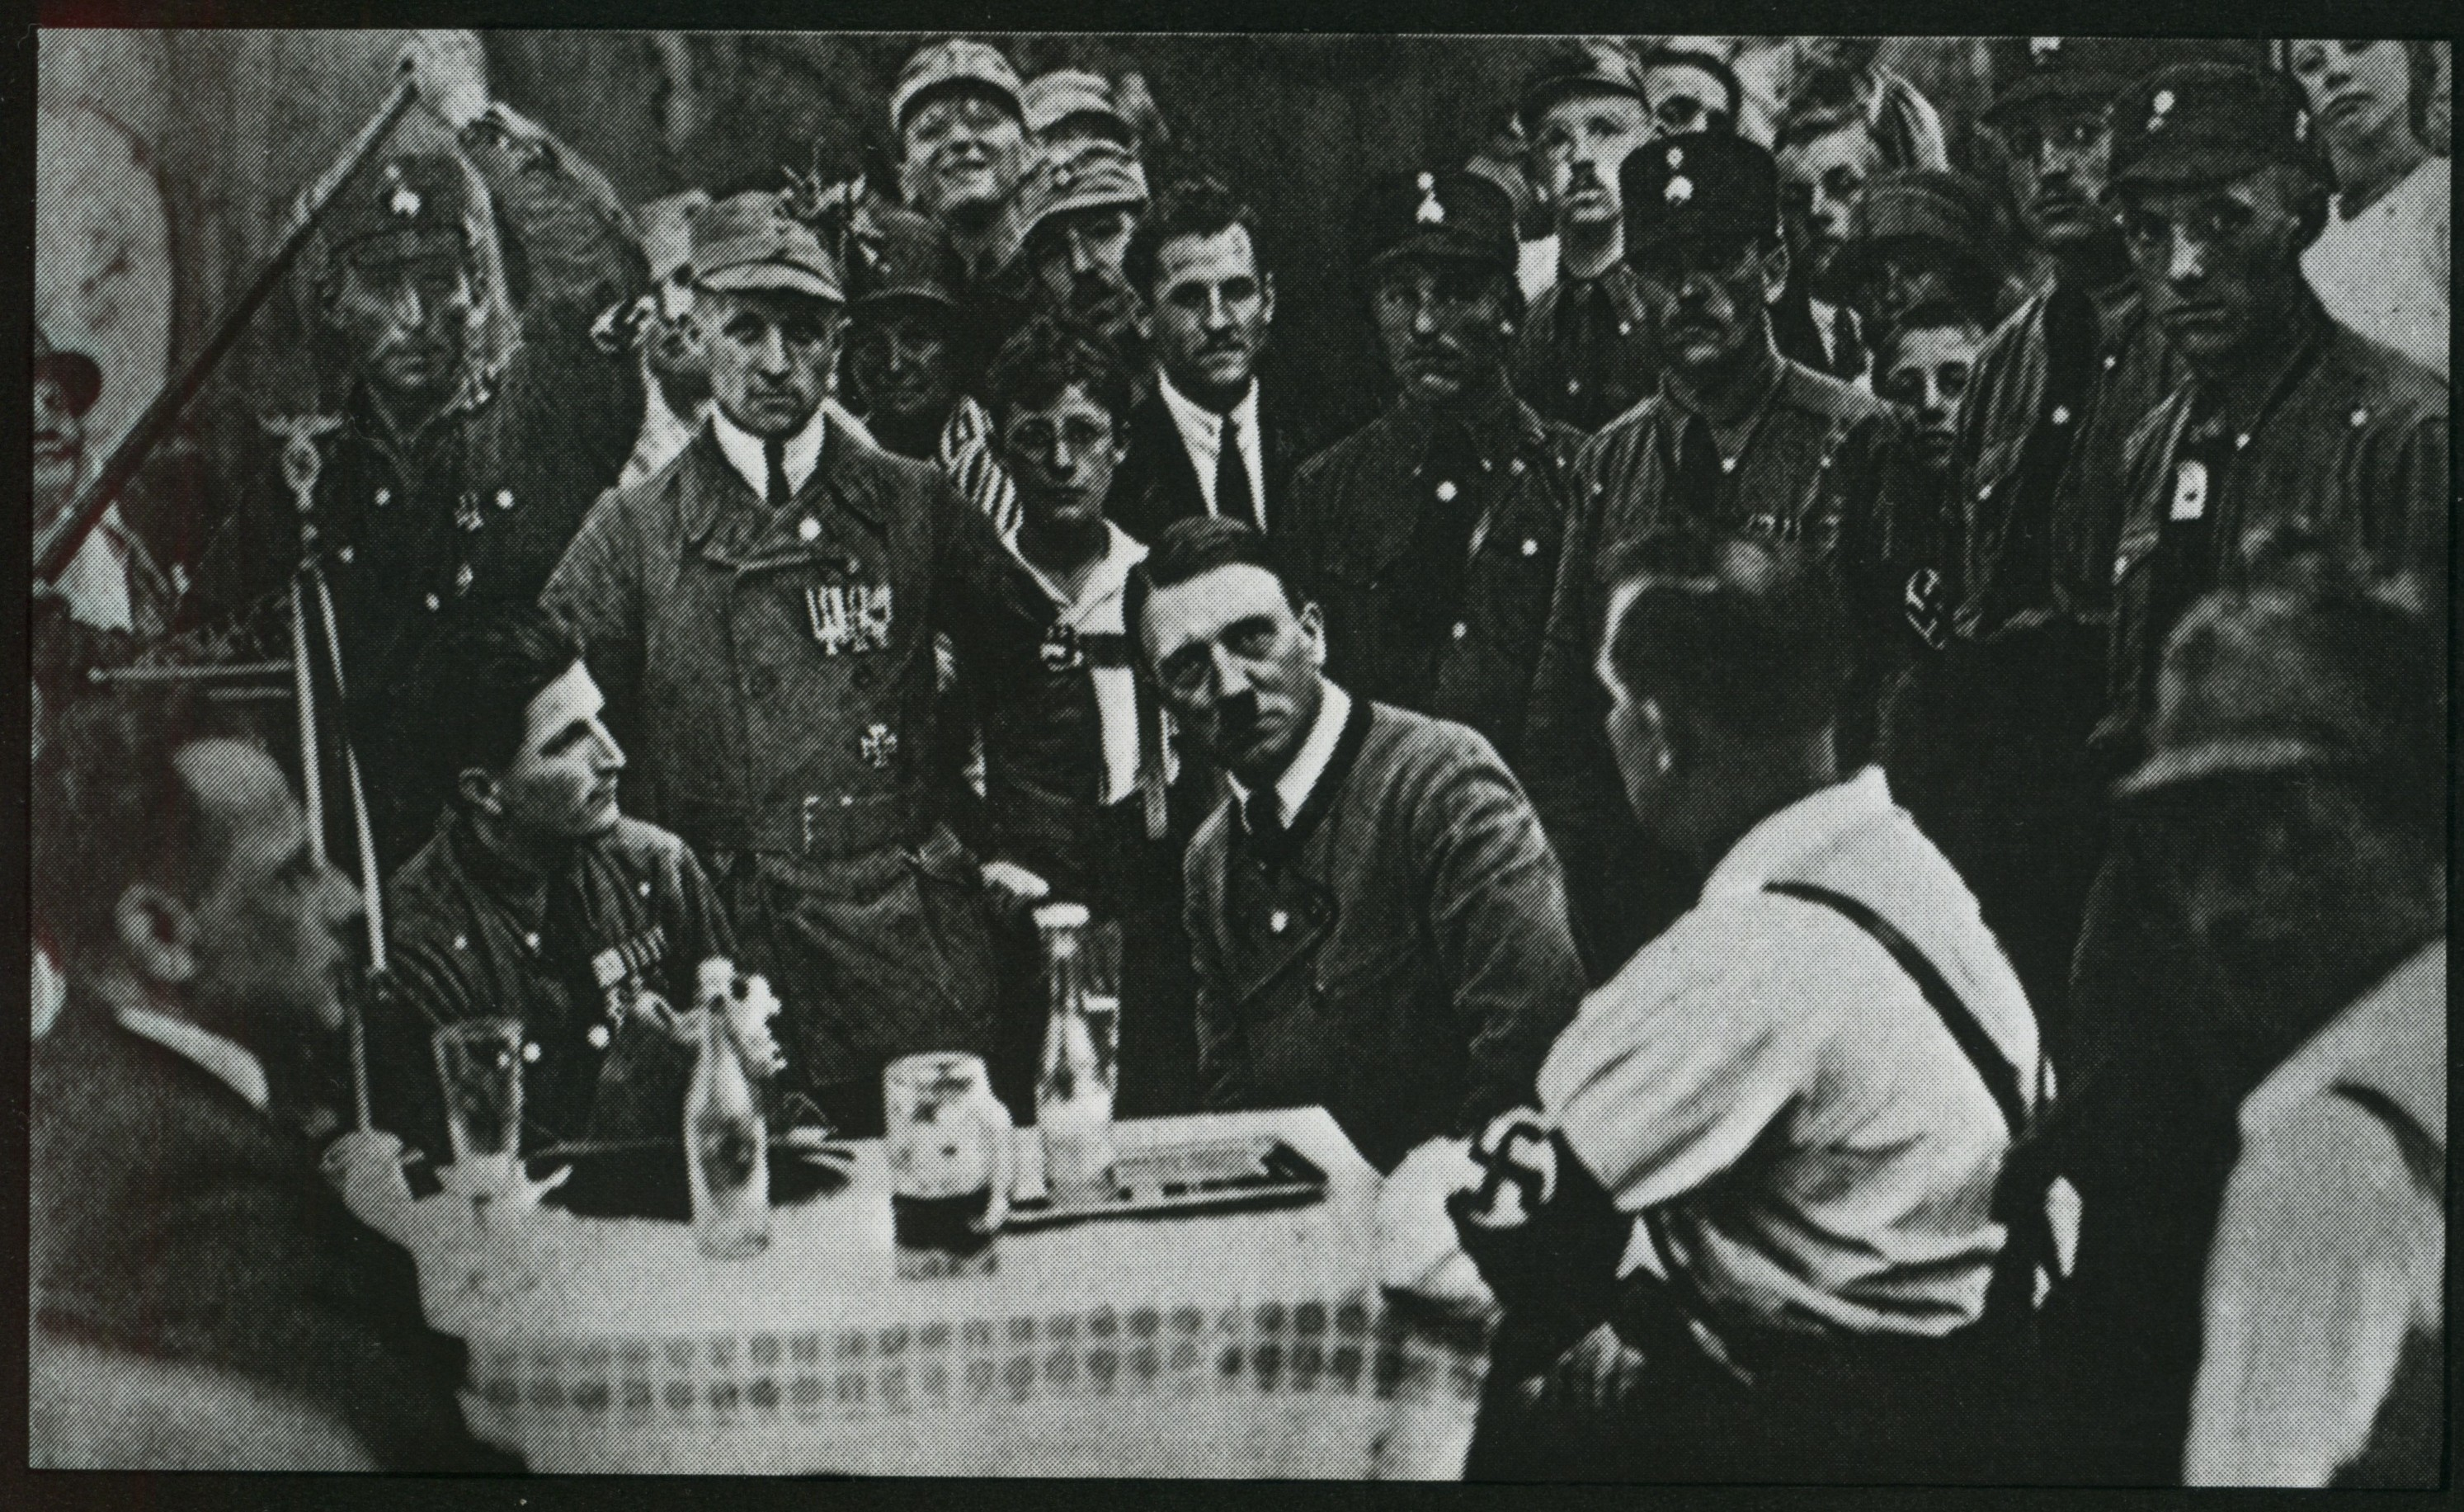 Meeting of the members of the NSDAP in Munich. In the center sits Adolf Hitler.